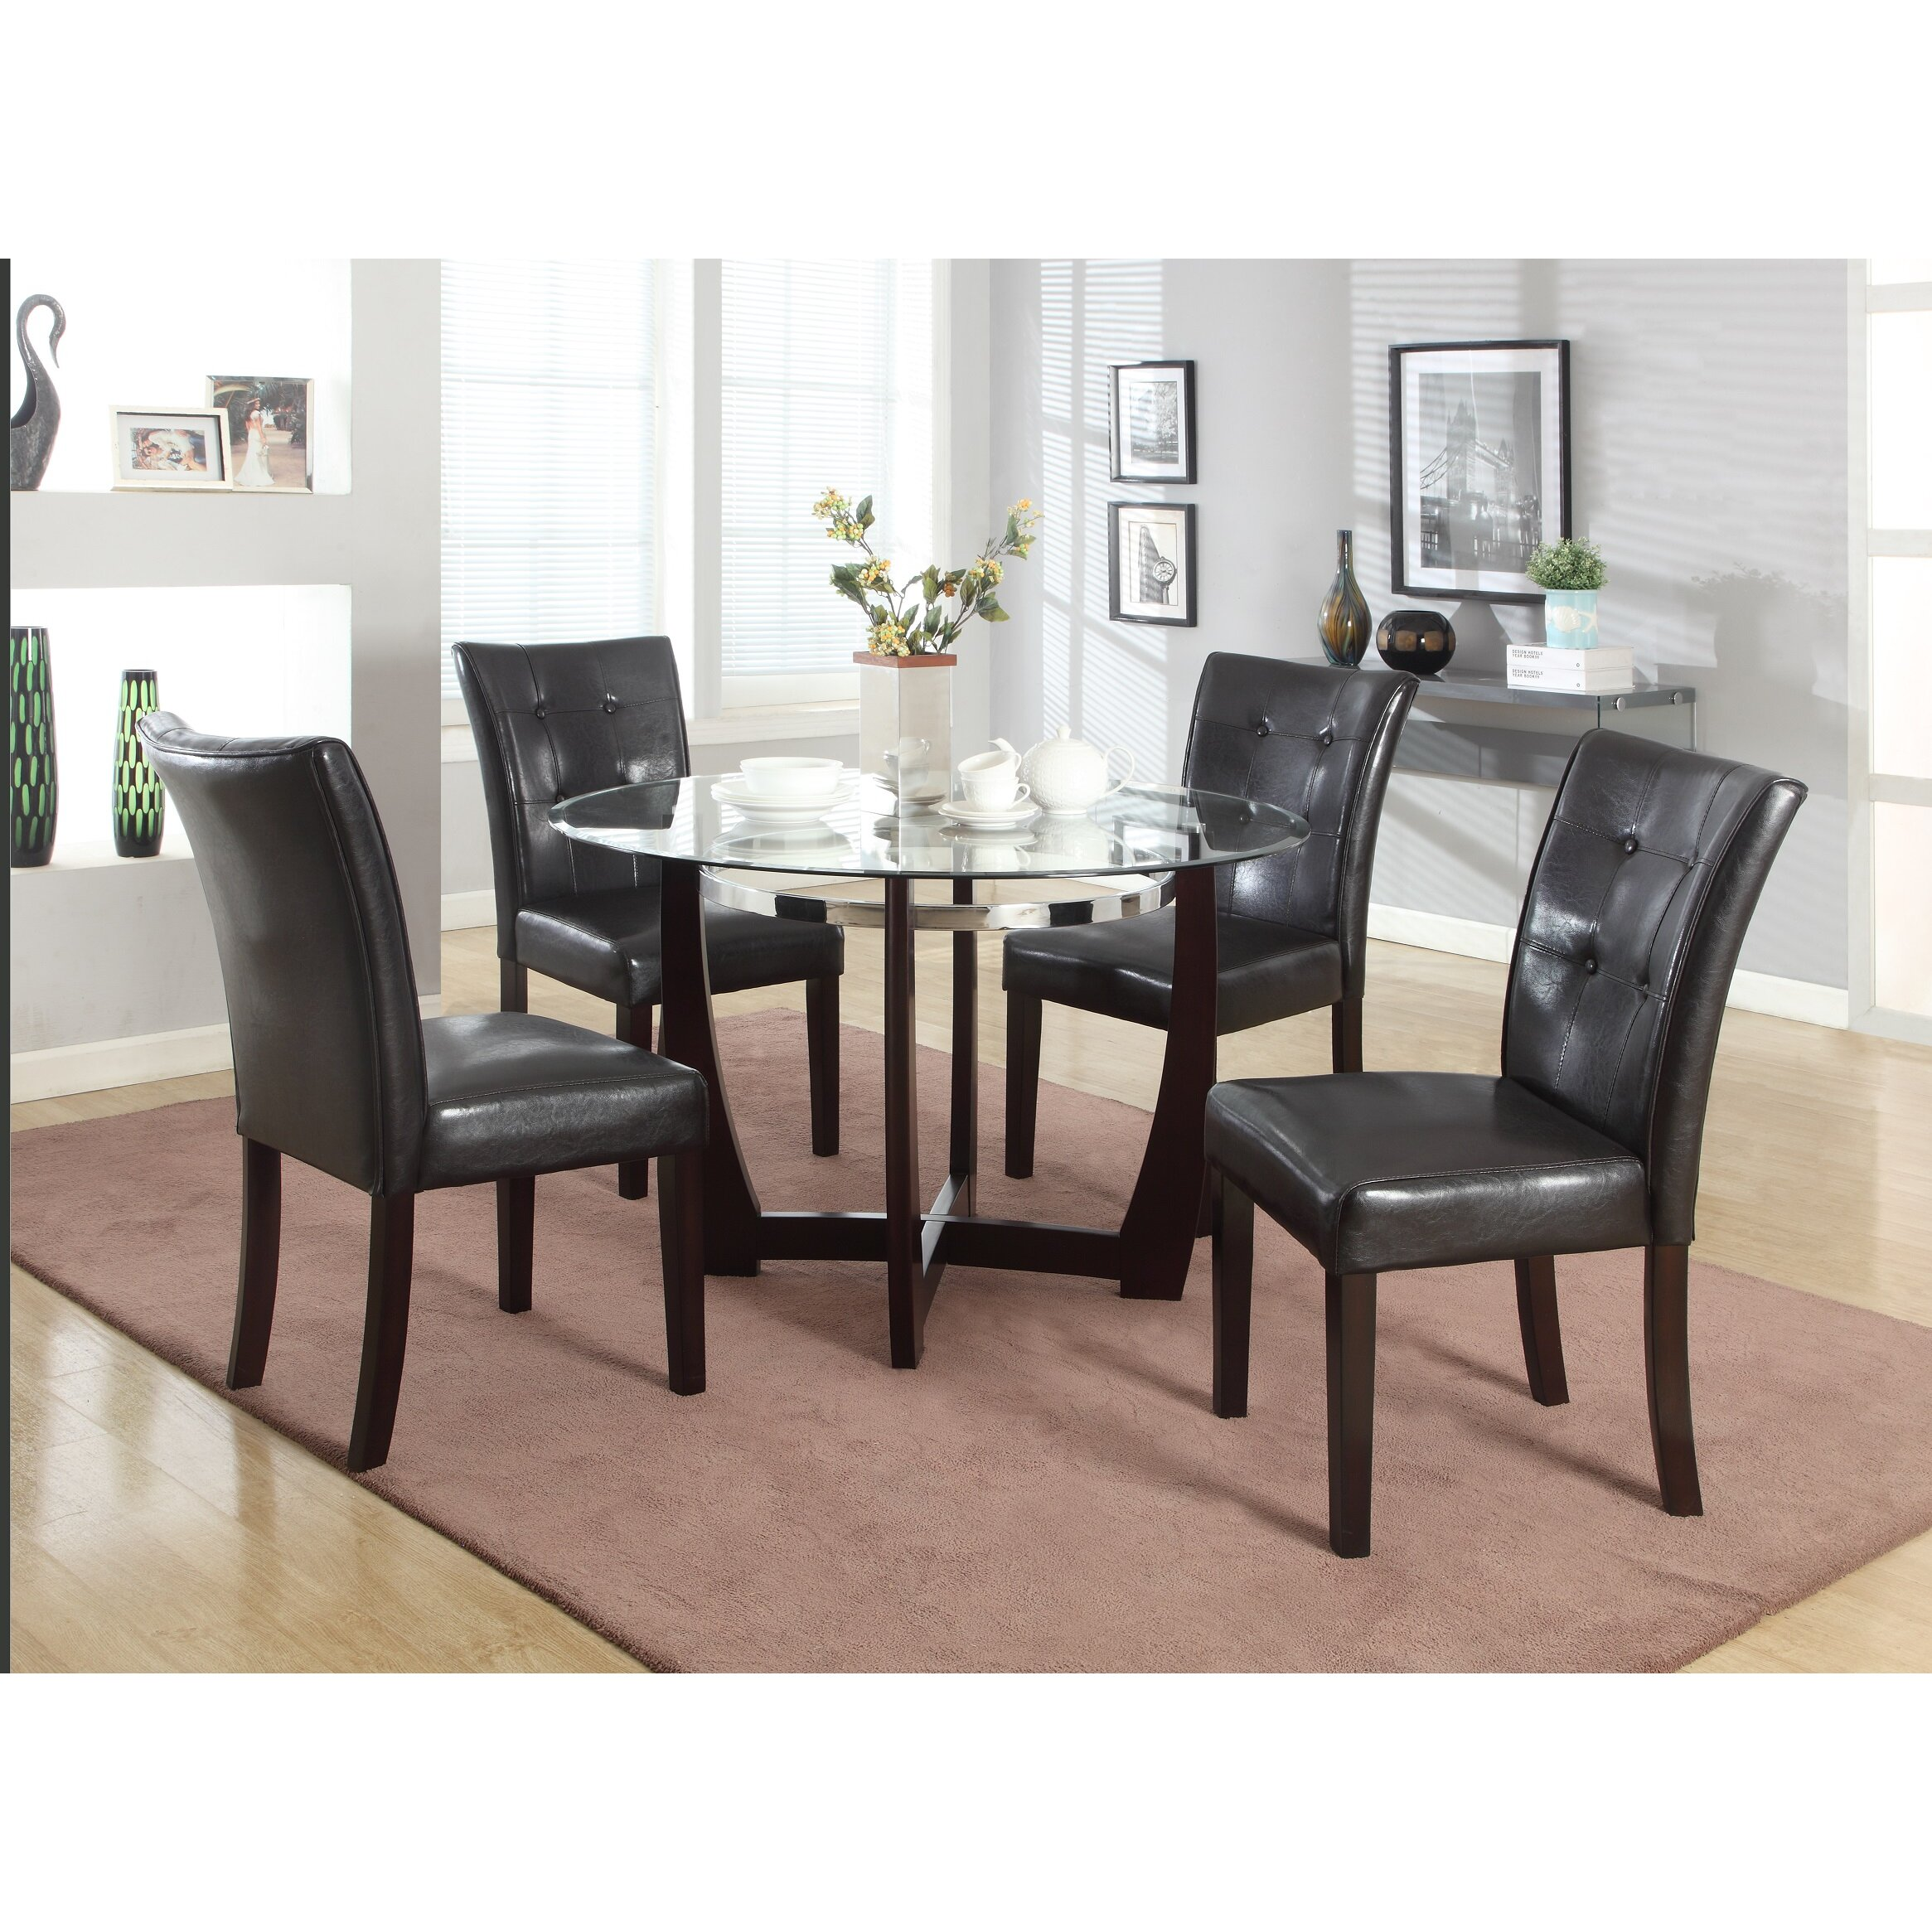 Ro round dining room sets for sale - 5 Piece Dining Set